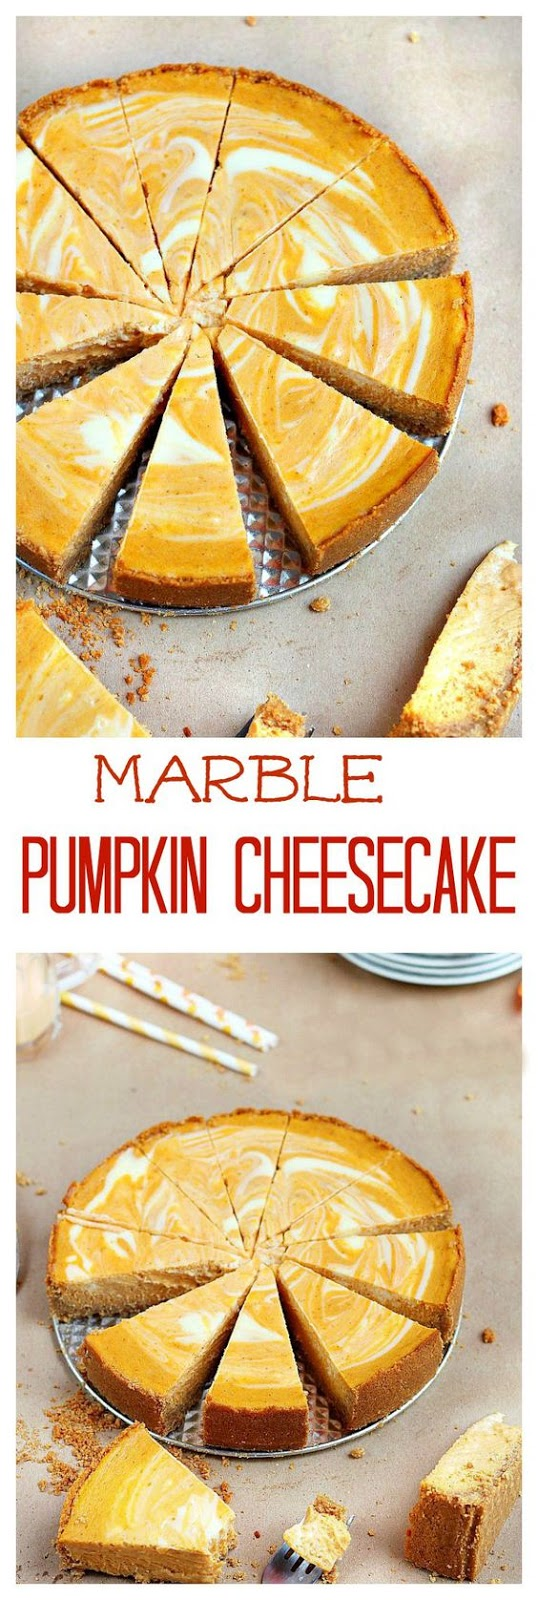 MARBLE PUMPKIN CHEESECAKE RECIPE